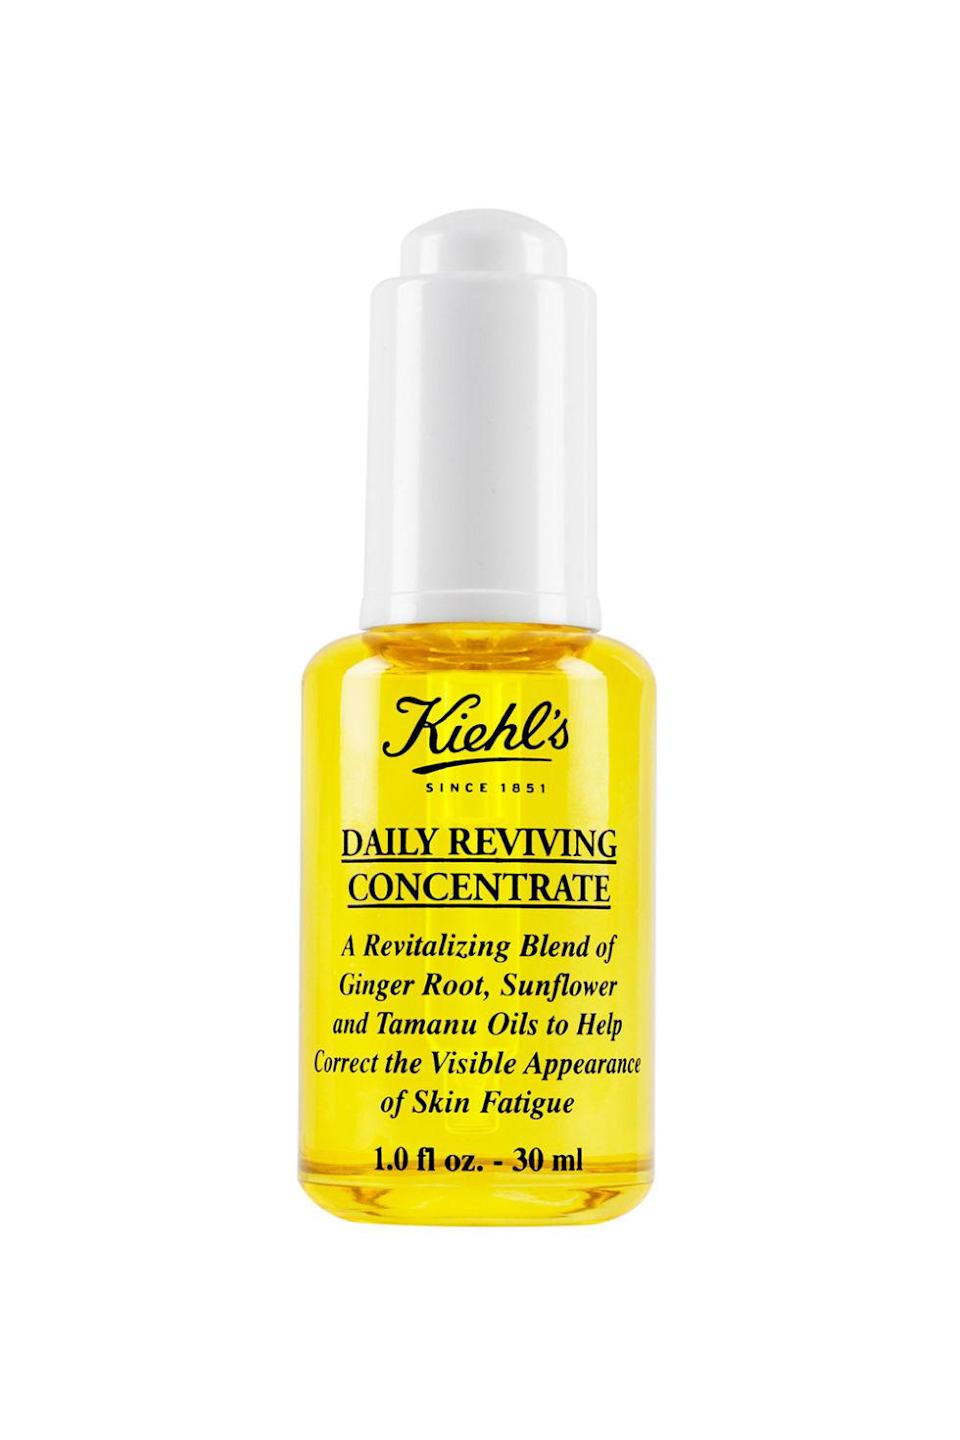 "<p>Our very own beauty editor Lauren Valenti swears by the ginger root, sunflower, and tamanu blend<span>, which promises (and delivers on) erasing signs of skin fatigue. </span></p><p>$72, <a href=""http://www.kiehls.com/daily-reviving-concentrate/KHL497.html?cgid=face-serums&dwvar_KHL497_size=1.0%20fl.%20oz.#start=5&cgid=face-serums"" rel=""nofollow noopener"" target=""_blank"" data-ylk=""slk:kiehls.com"" class=""link rapid-noclick-resp"">kiehls.com</a>.</p>"